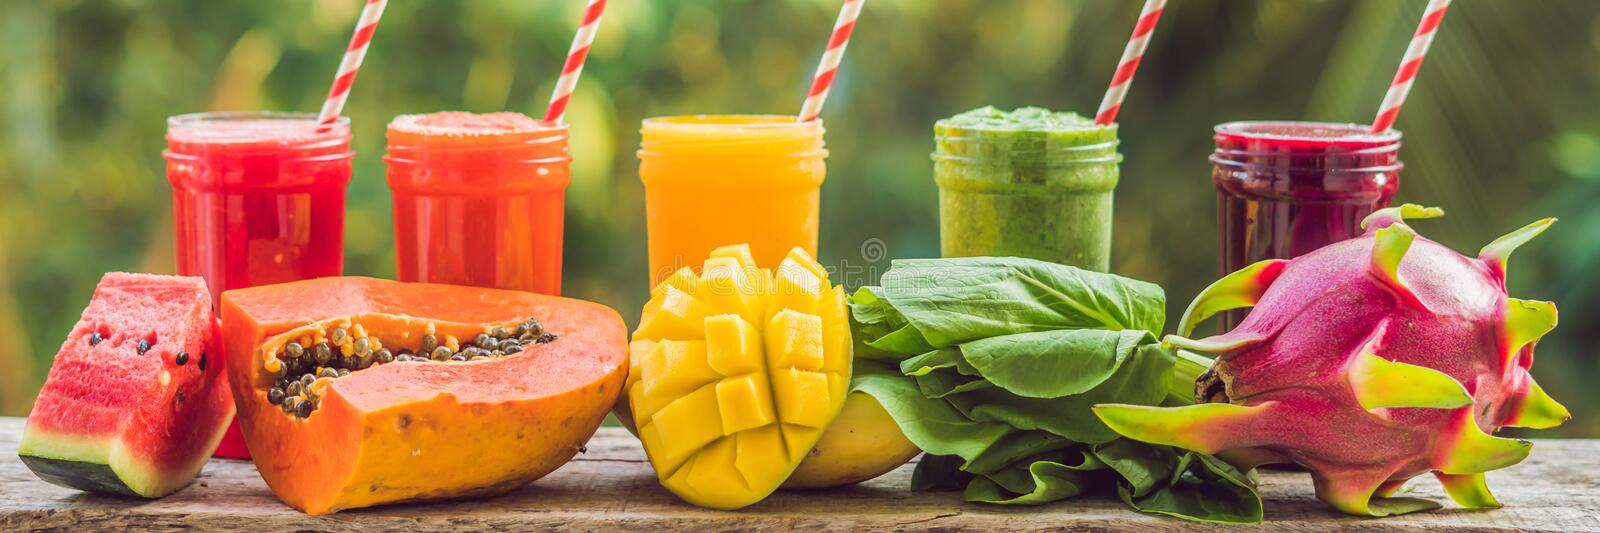 Rainbow from smoothies. Watermelon, papaya, mango, spinach and dragon fruit. Smoothies, juices, beverages, drinks stock image